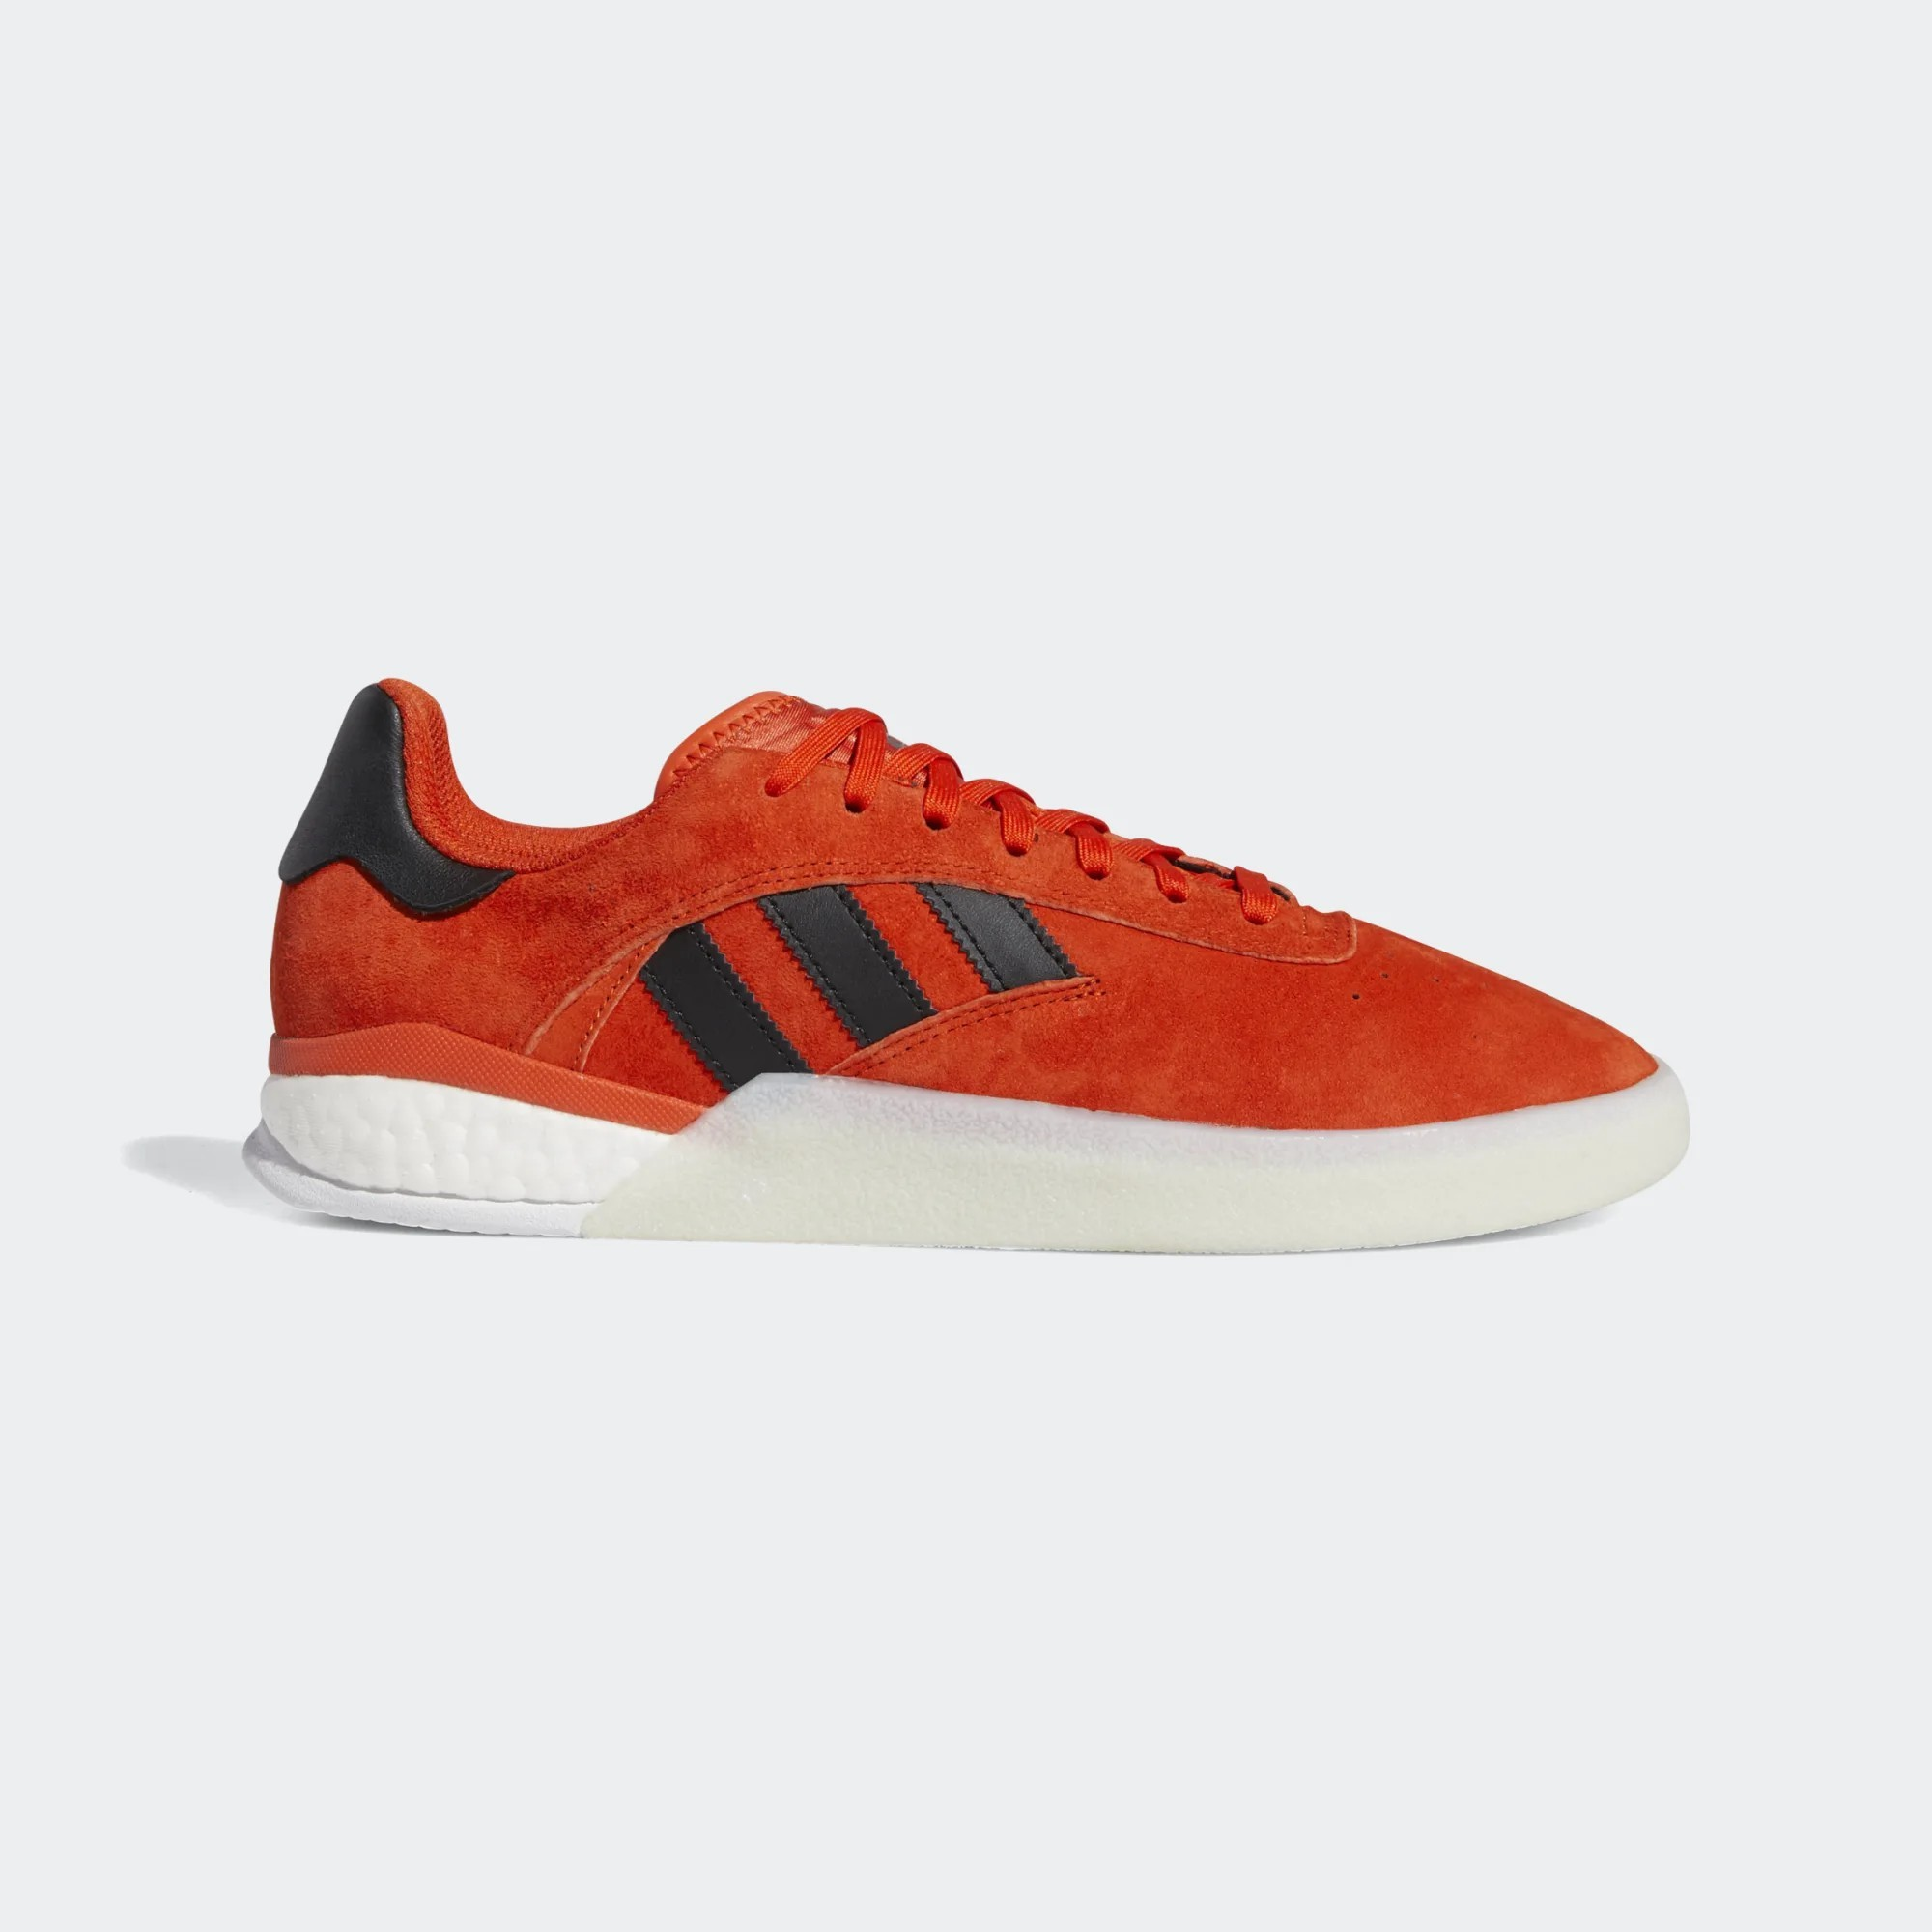 3ST.004 'Collegiate Orange' adidas DB3150